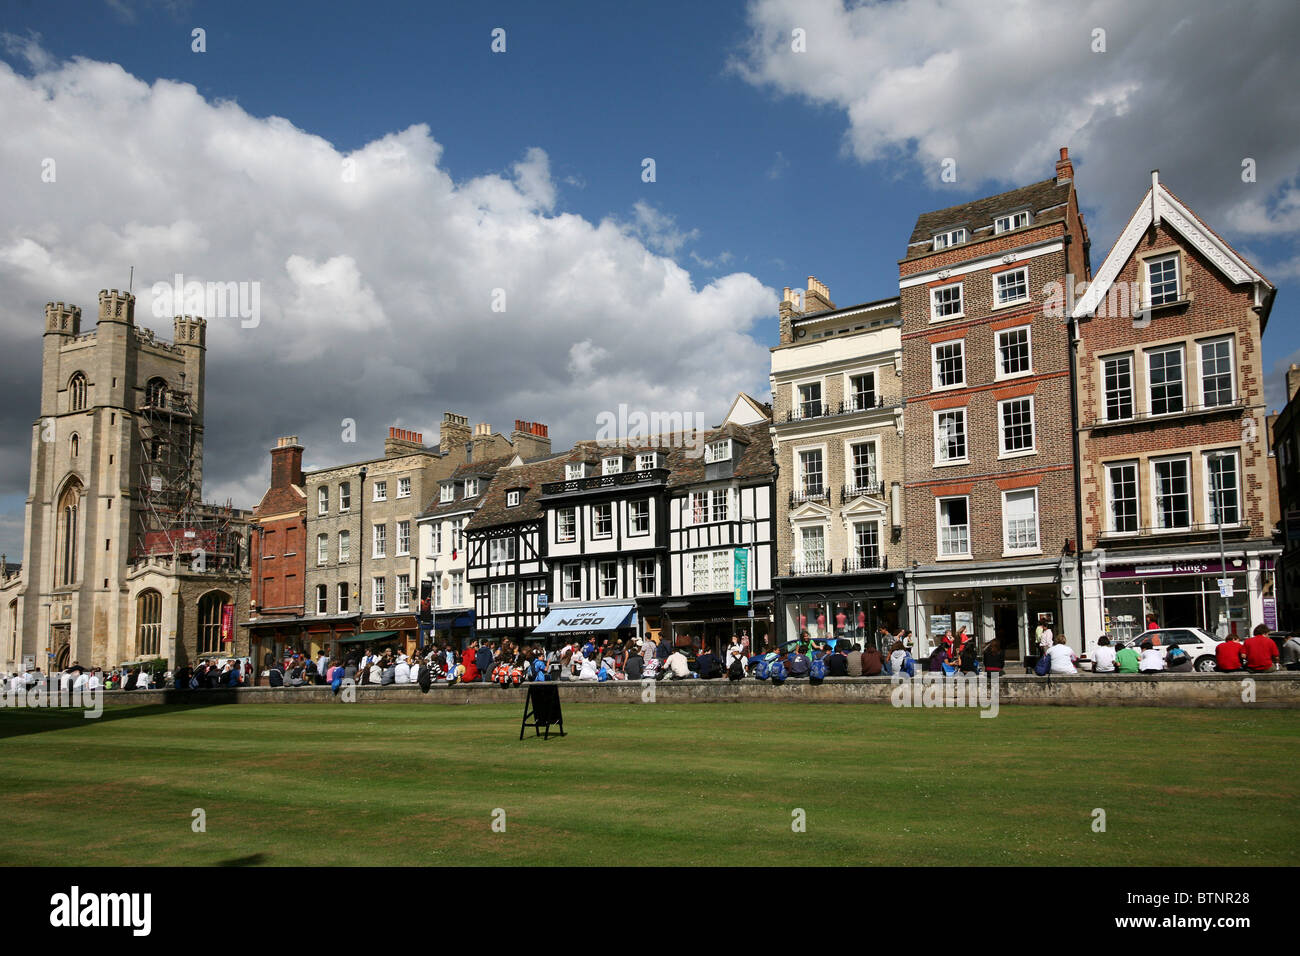 Cambridge, Street View, King's Parade across from King's College - Stock Image